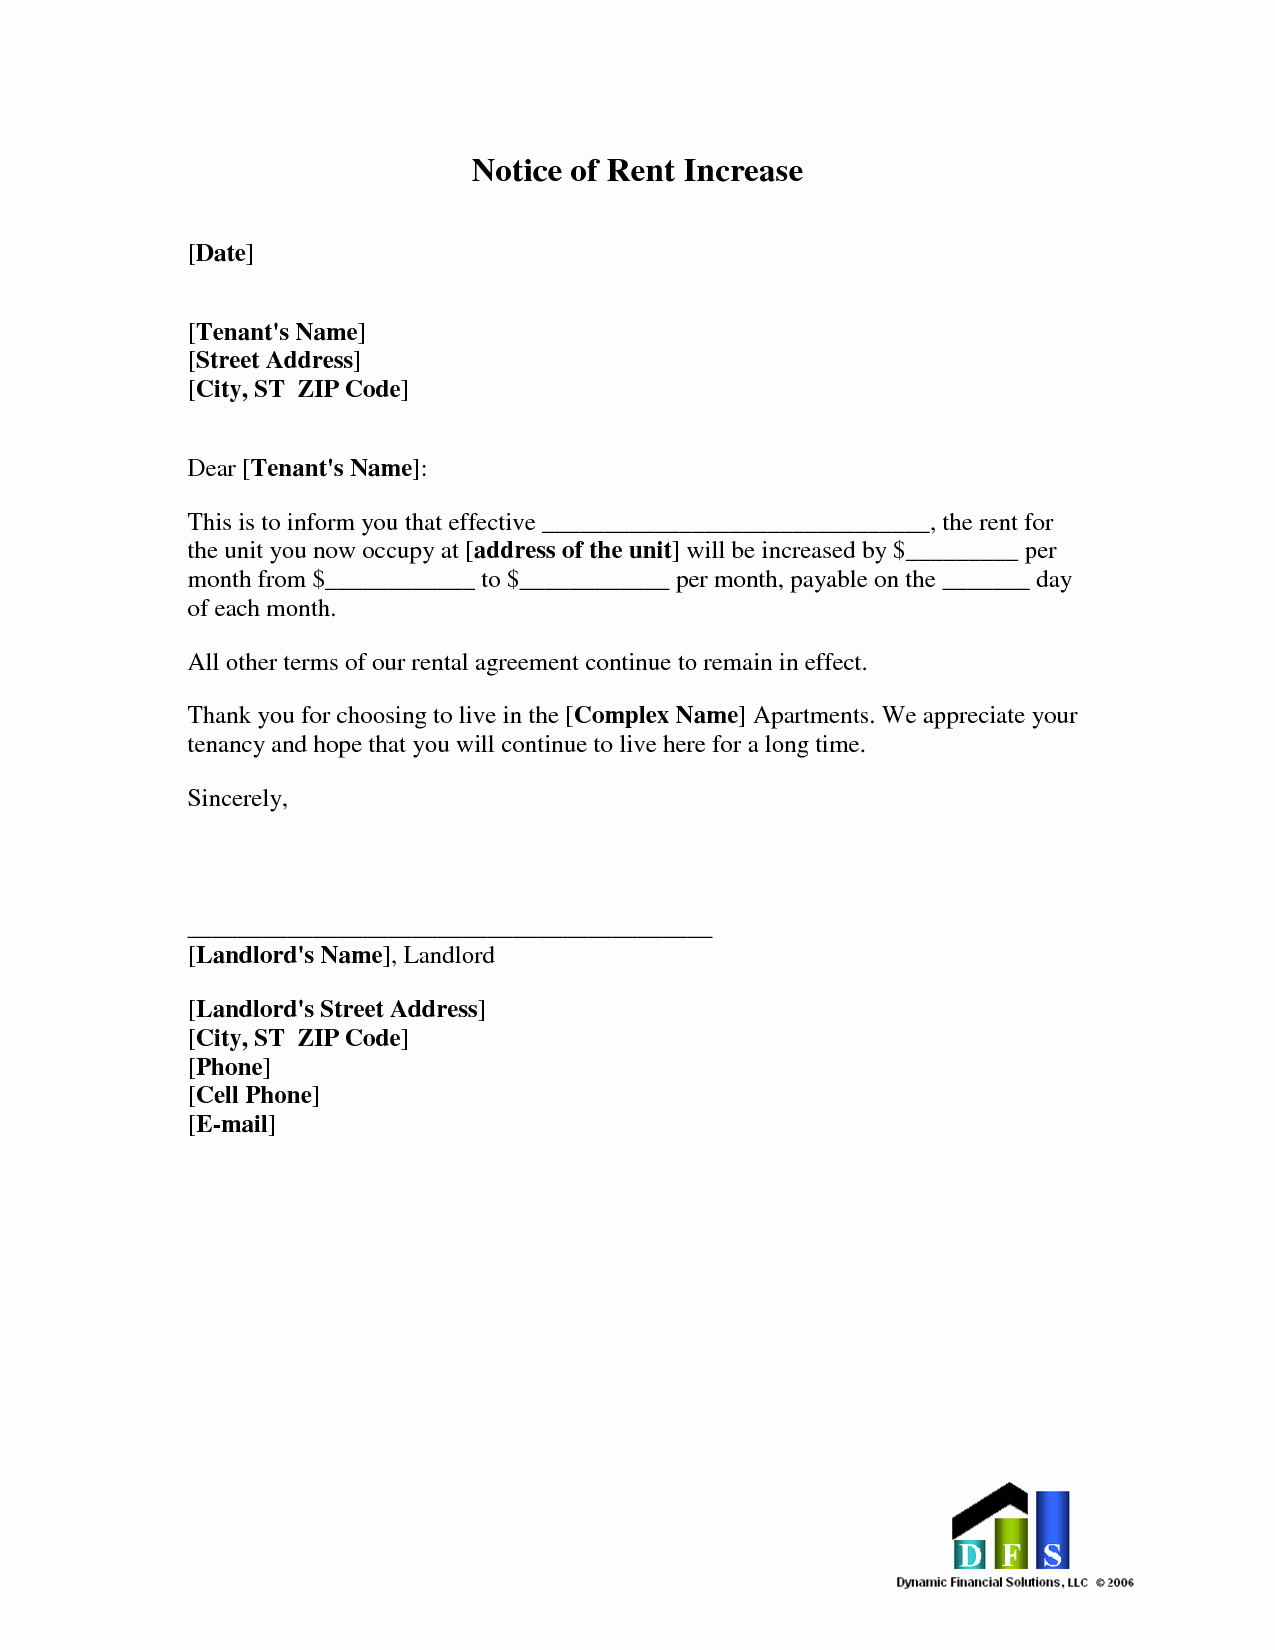 Tenant Rent Increase Letter New Best S Of Rent Increase Letter to Tenant In